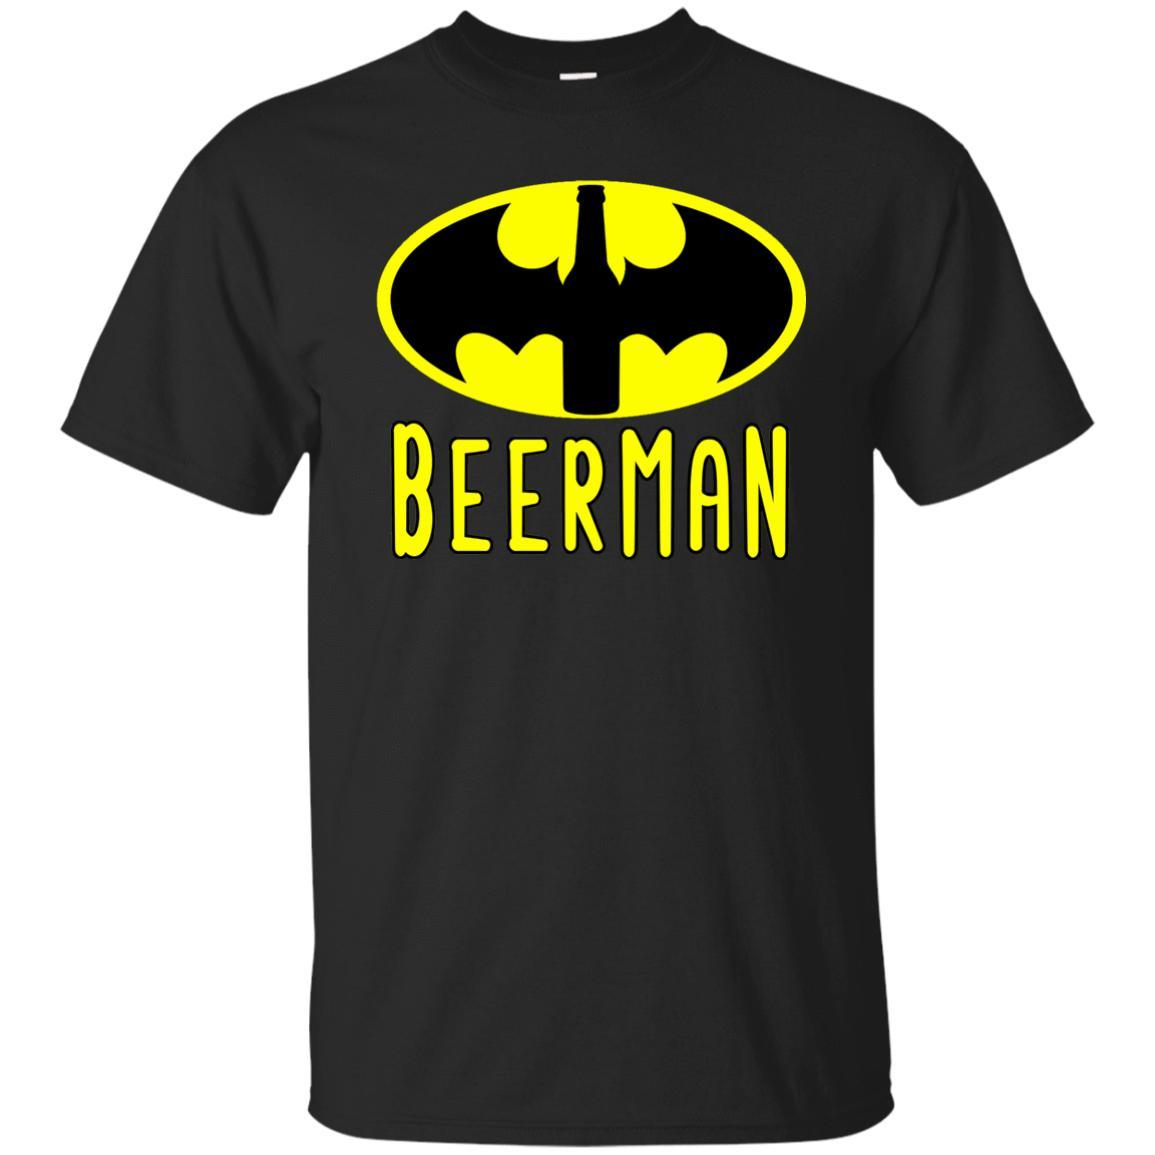 Beerman Beer Shirt